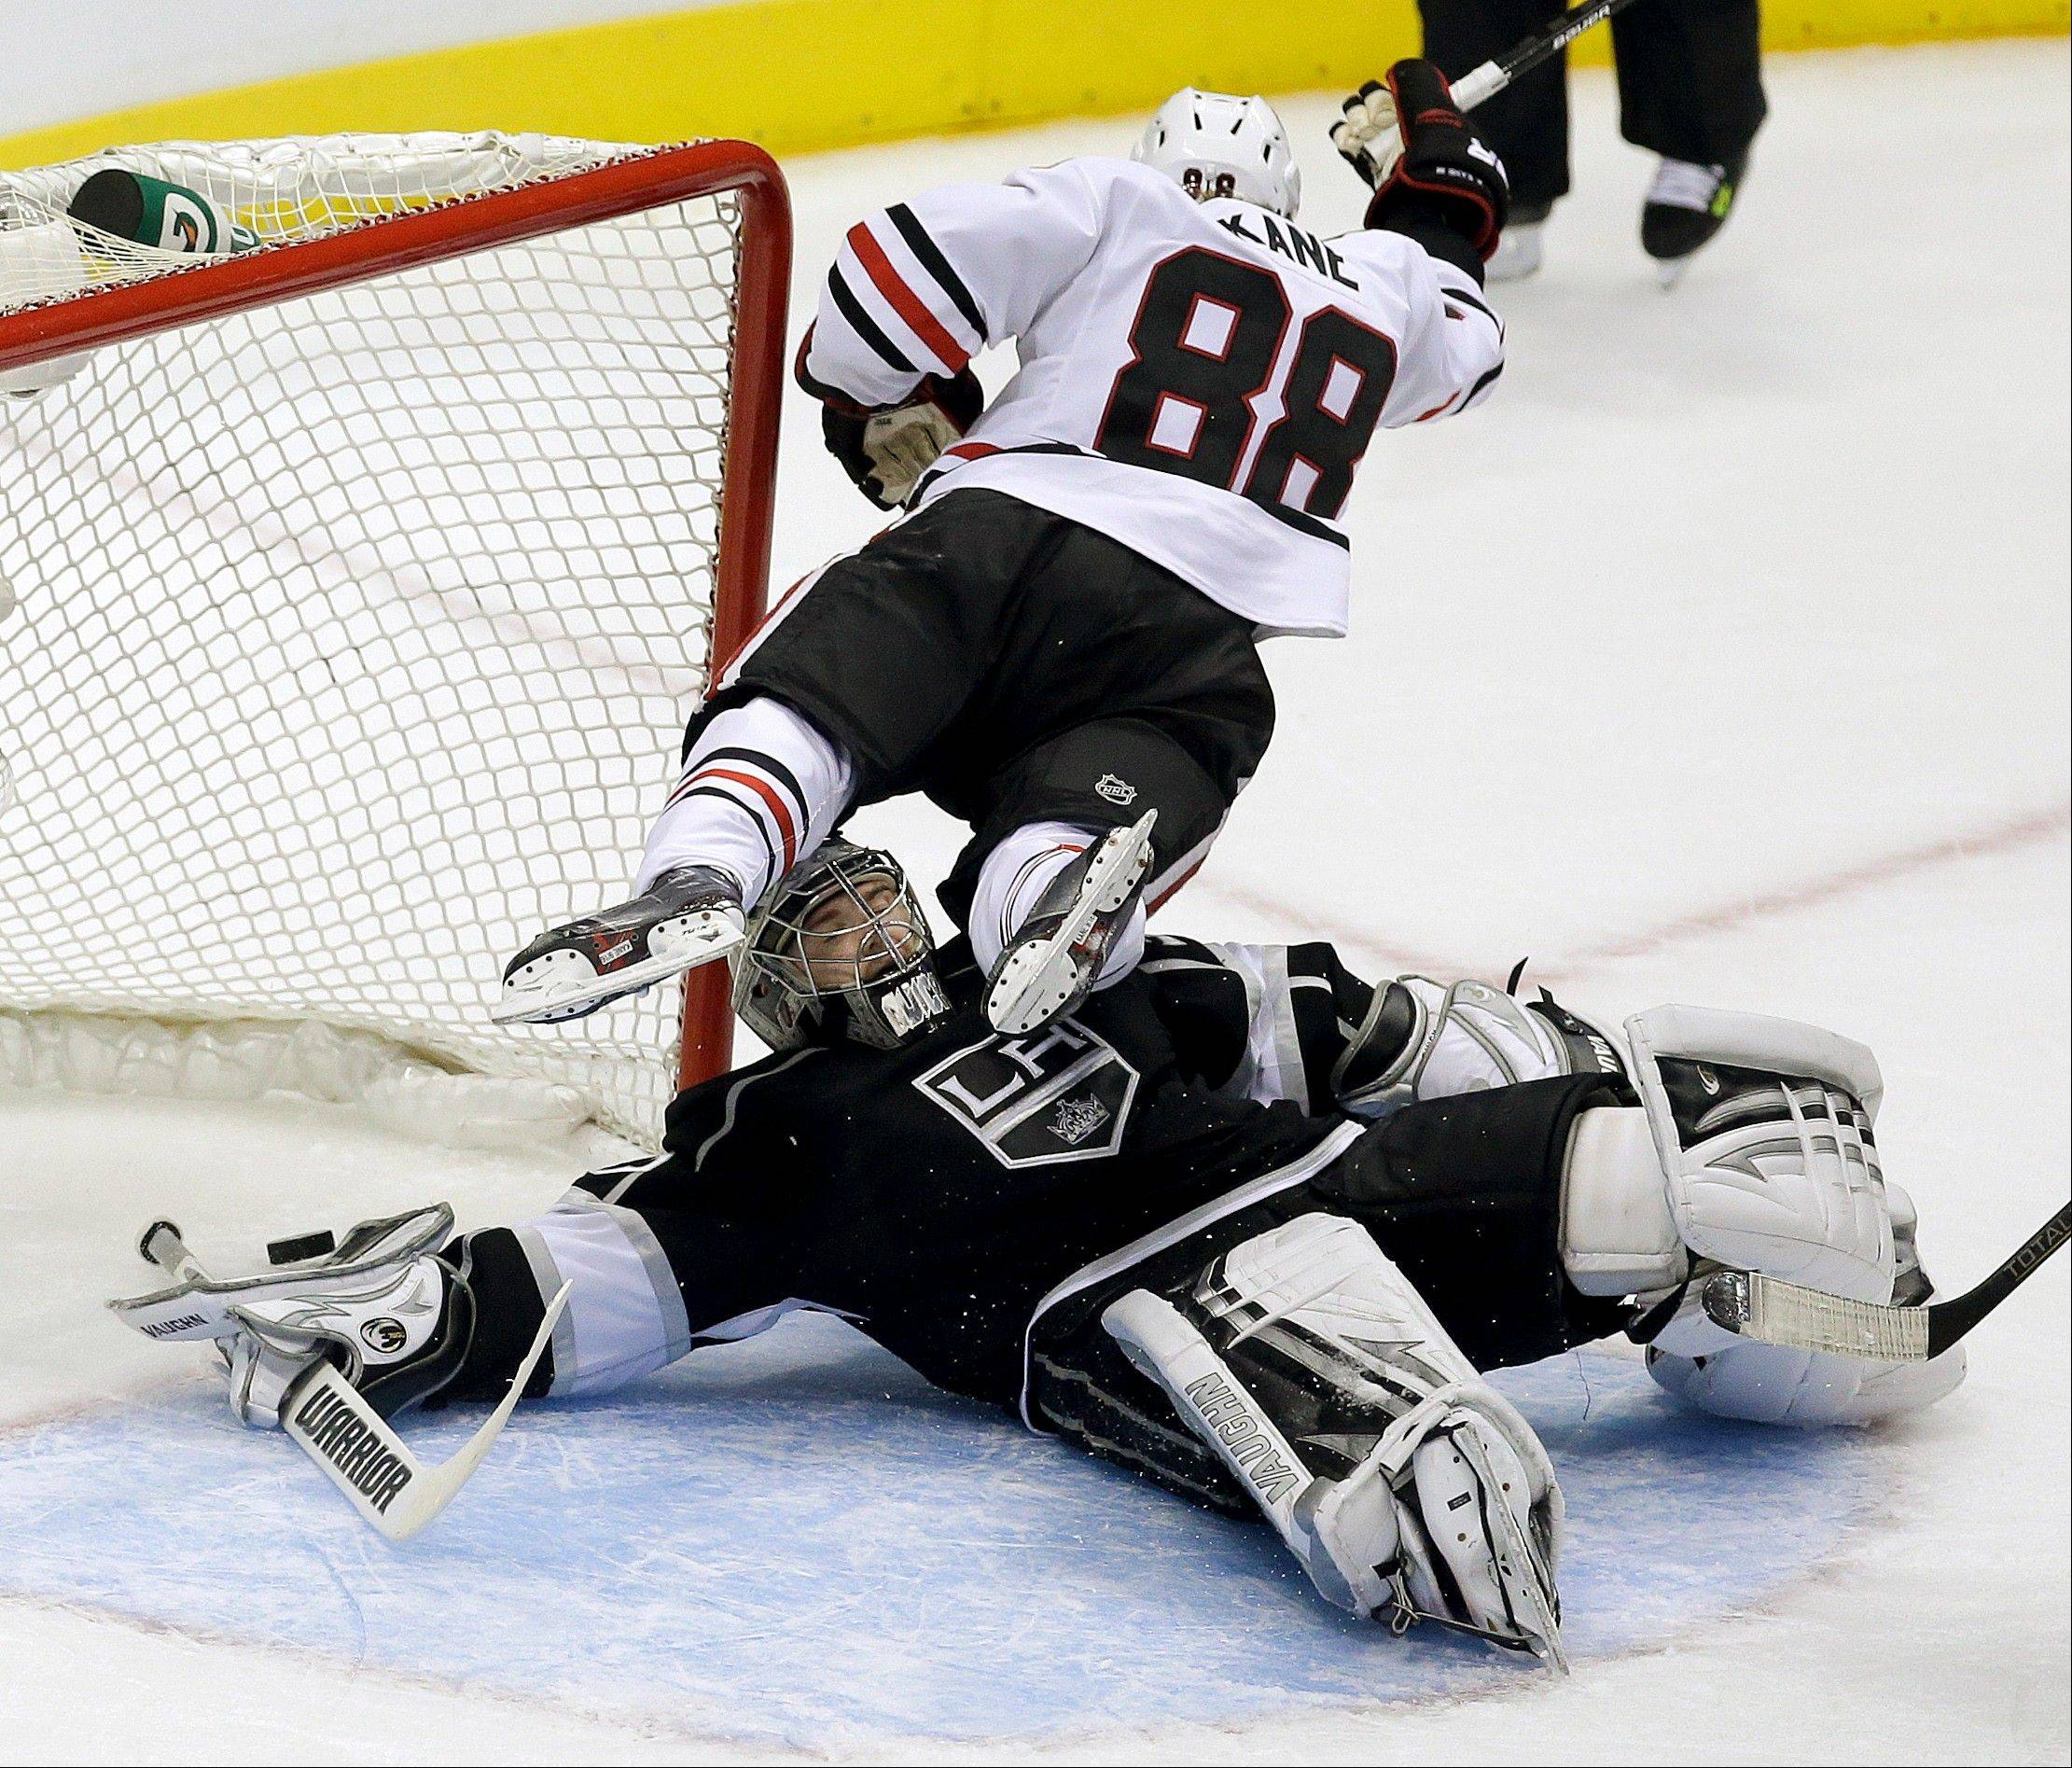 Chicago Blackhawks right wing Patrick Kane scores past Los Angeles Kings goalie Jonathan Quick during the second period in Game 4 of the NHL hockey Stanley Cup playoffs Western Conference finals, in Los Angeles on Thursday, June 6, 2013.